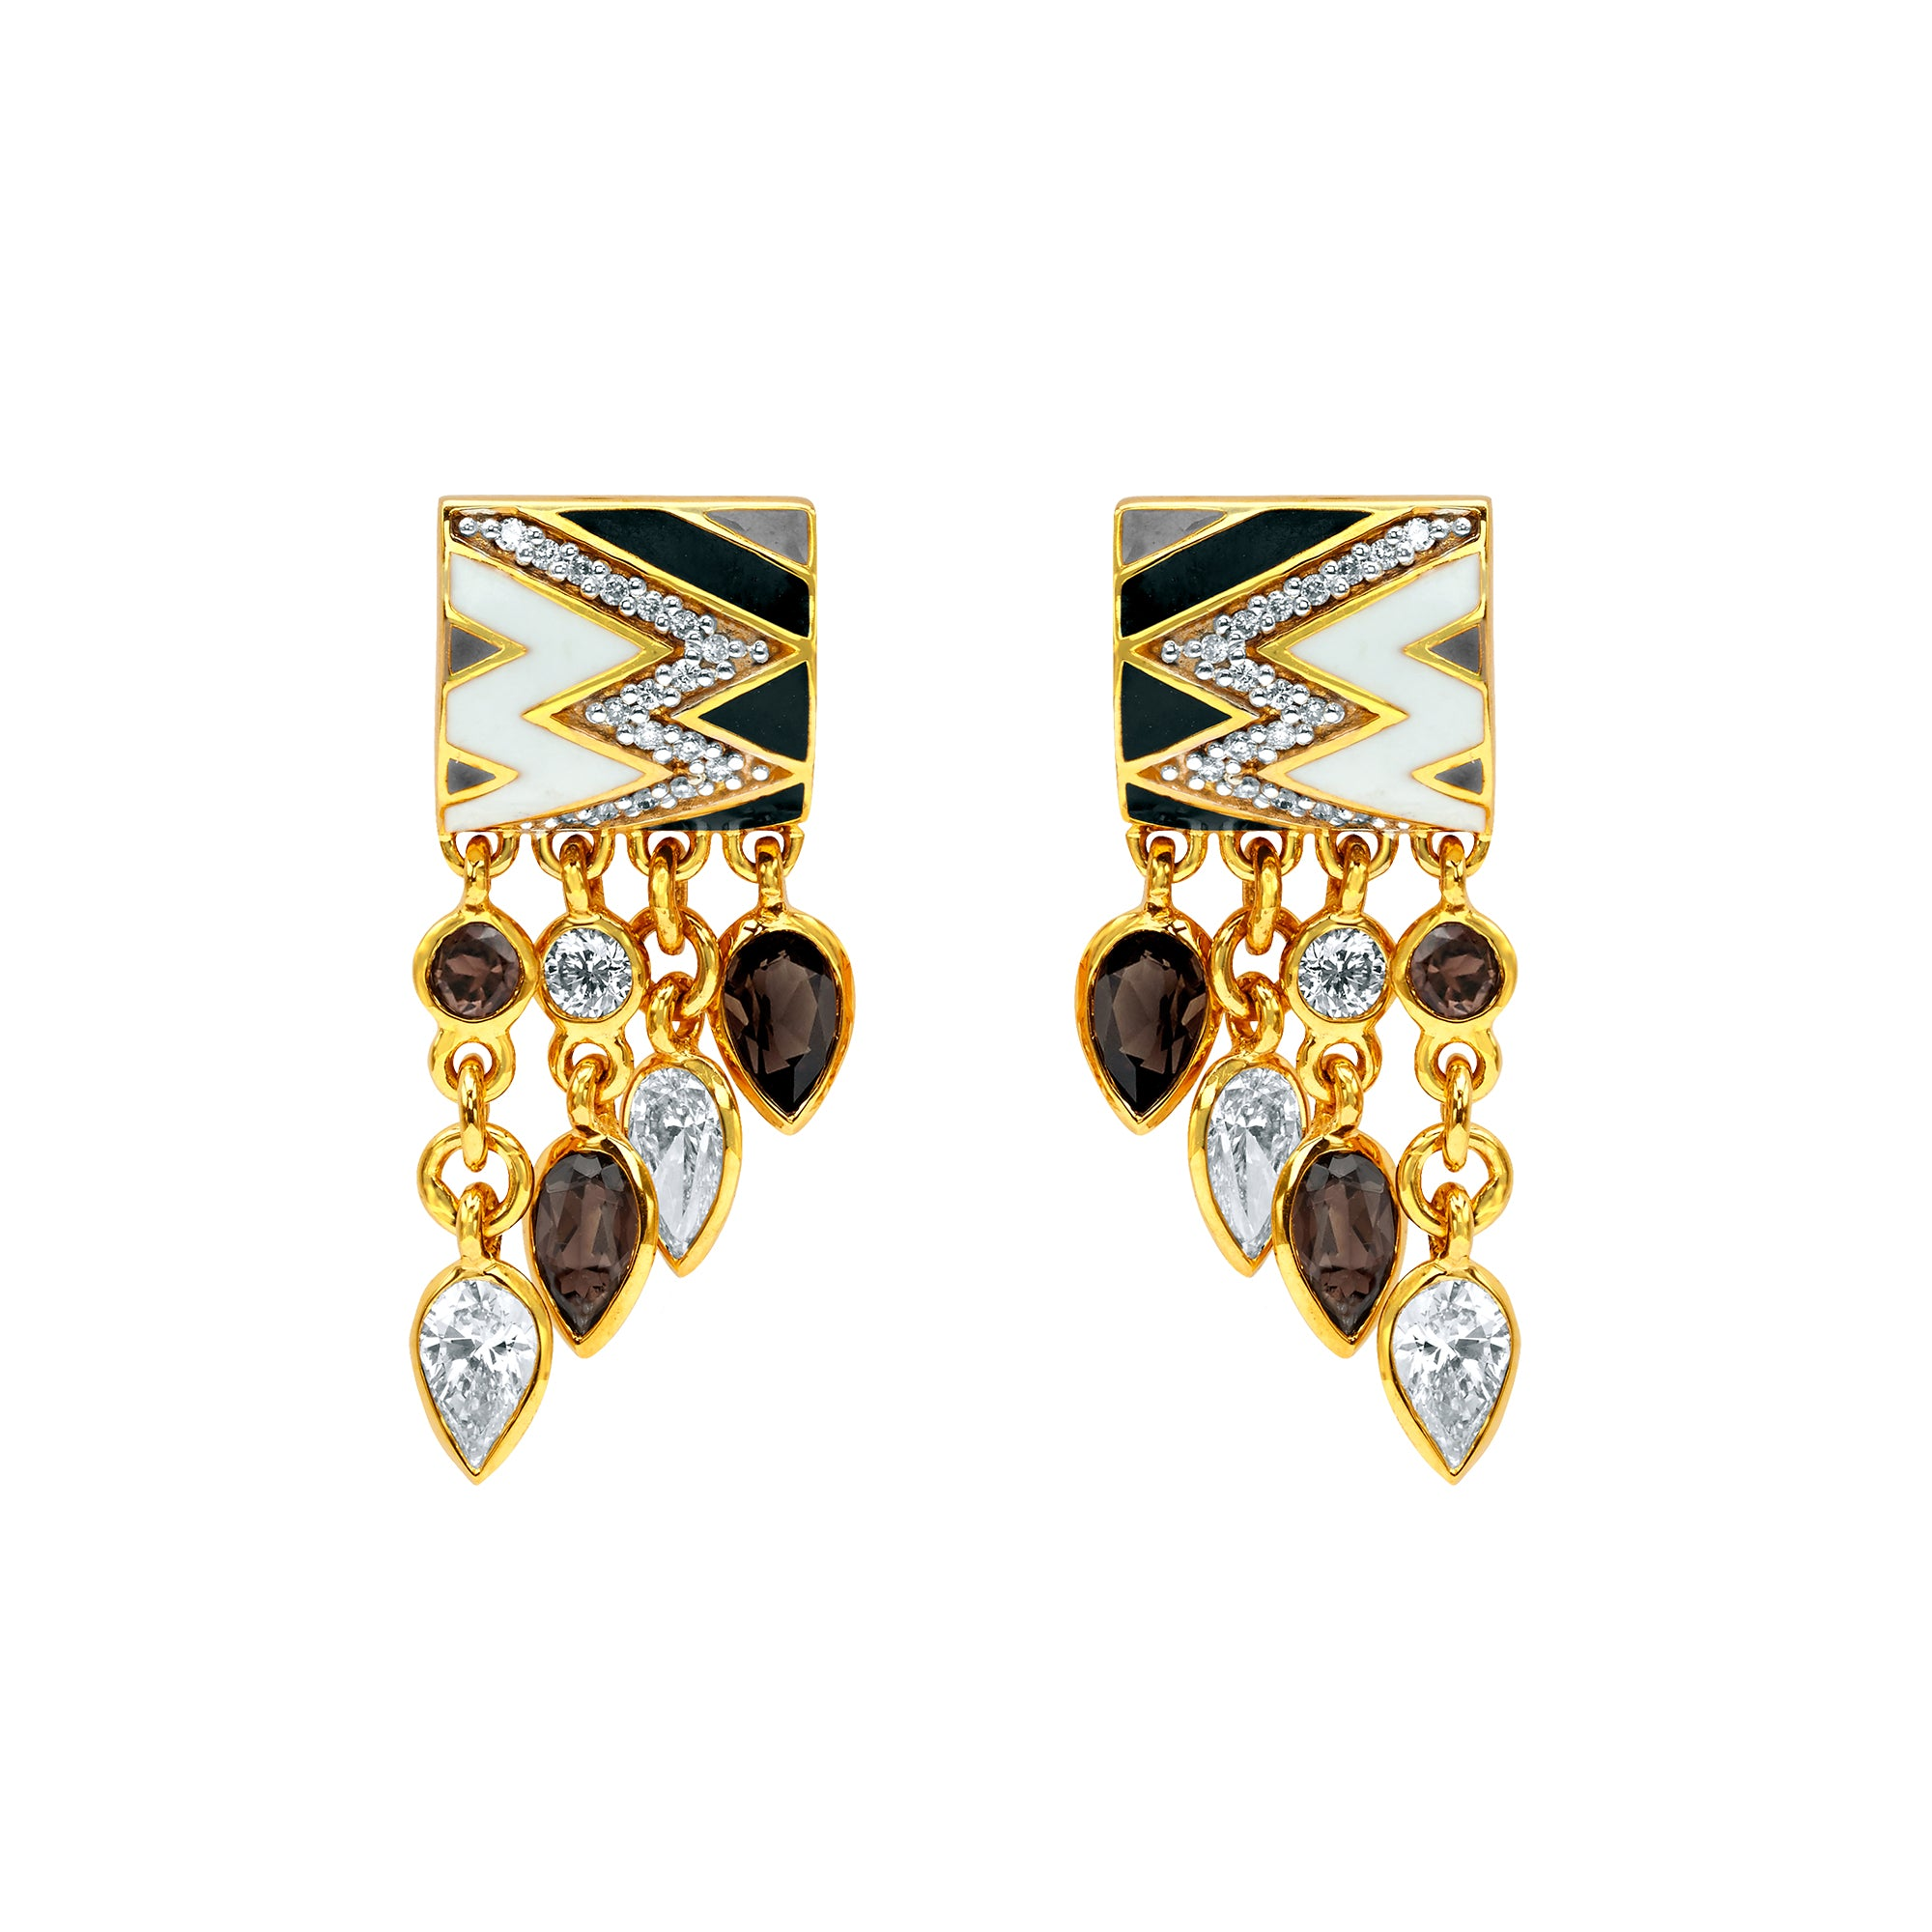 Gold Diamond Quartz Enamel Earcuffs by Buddha Mama for Broken English Jewelry